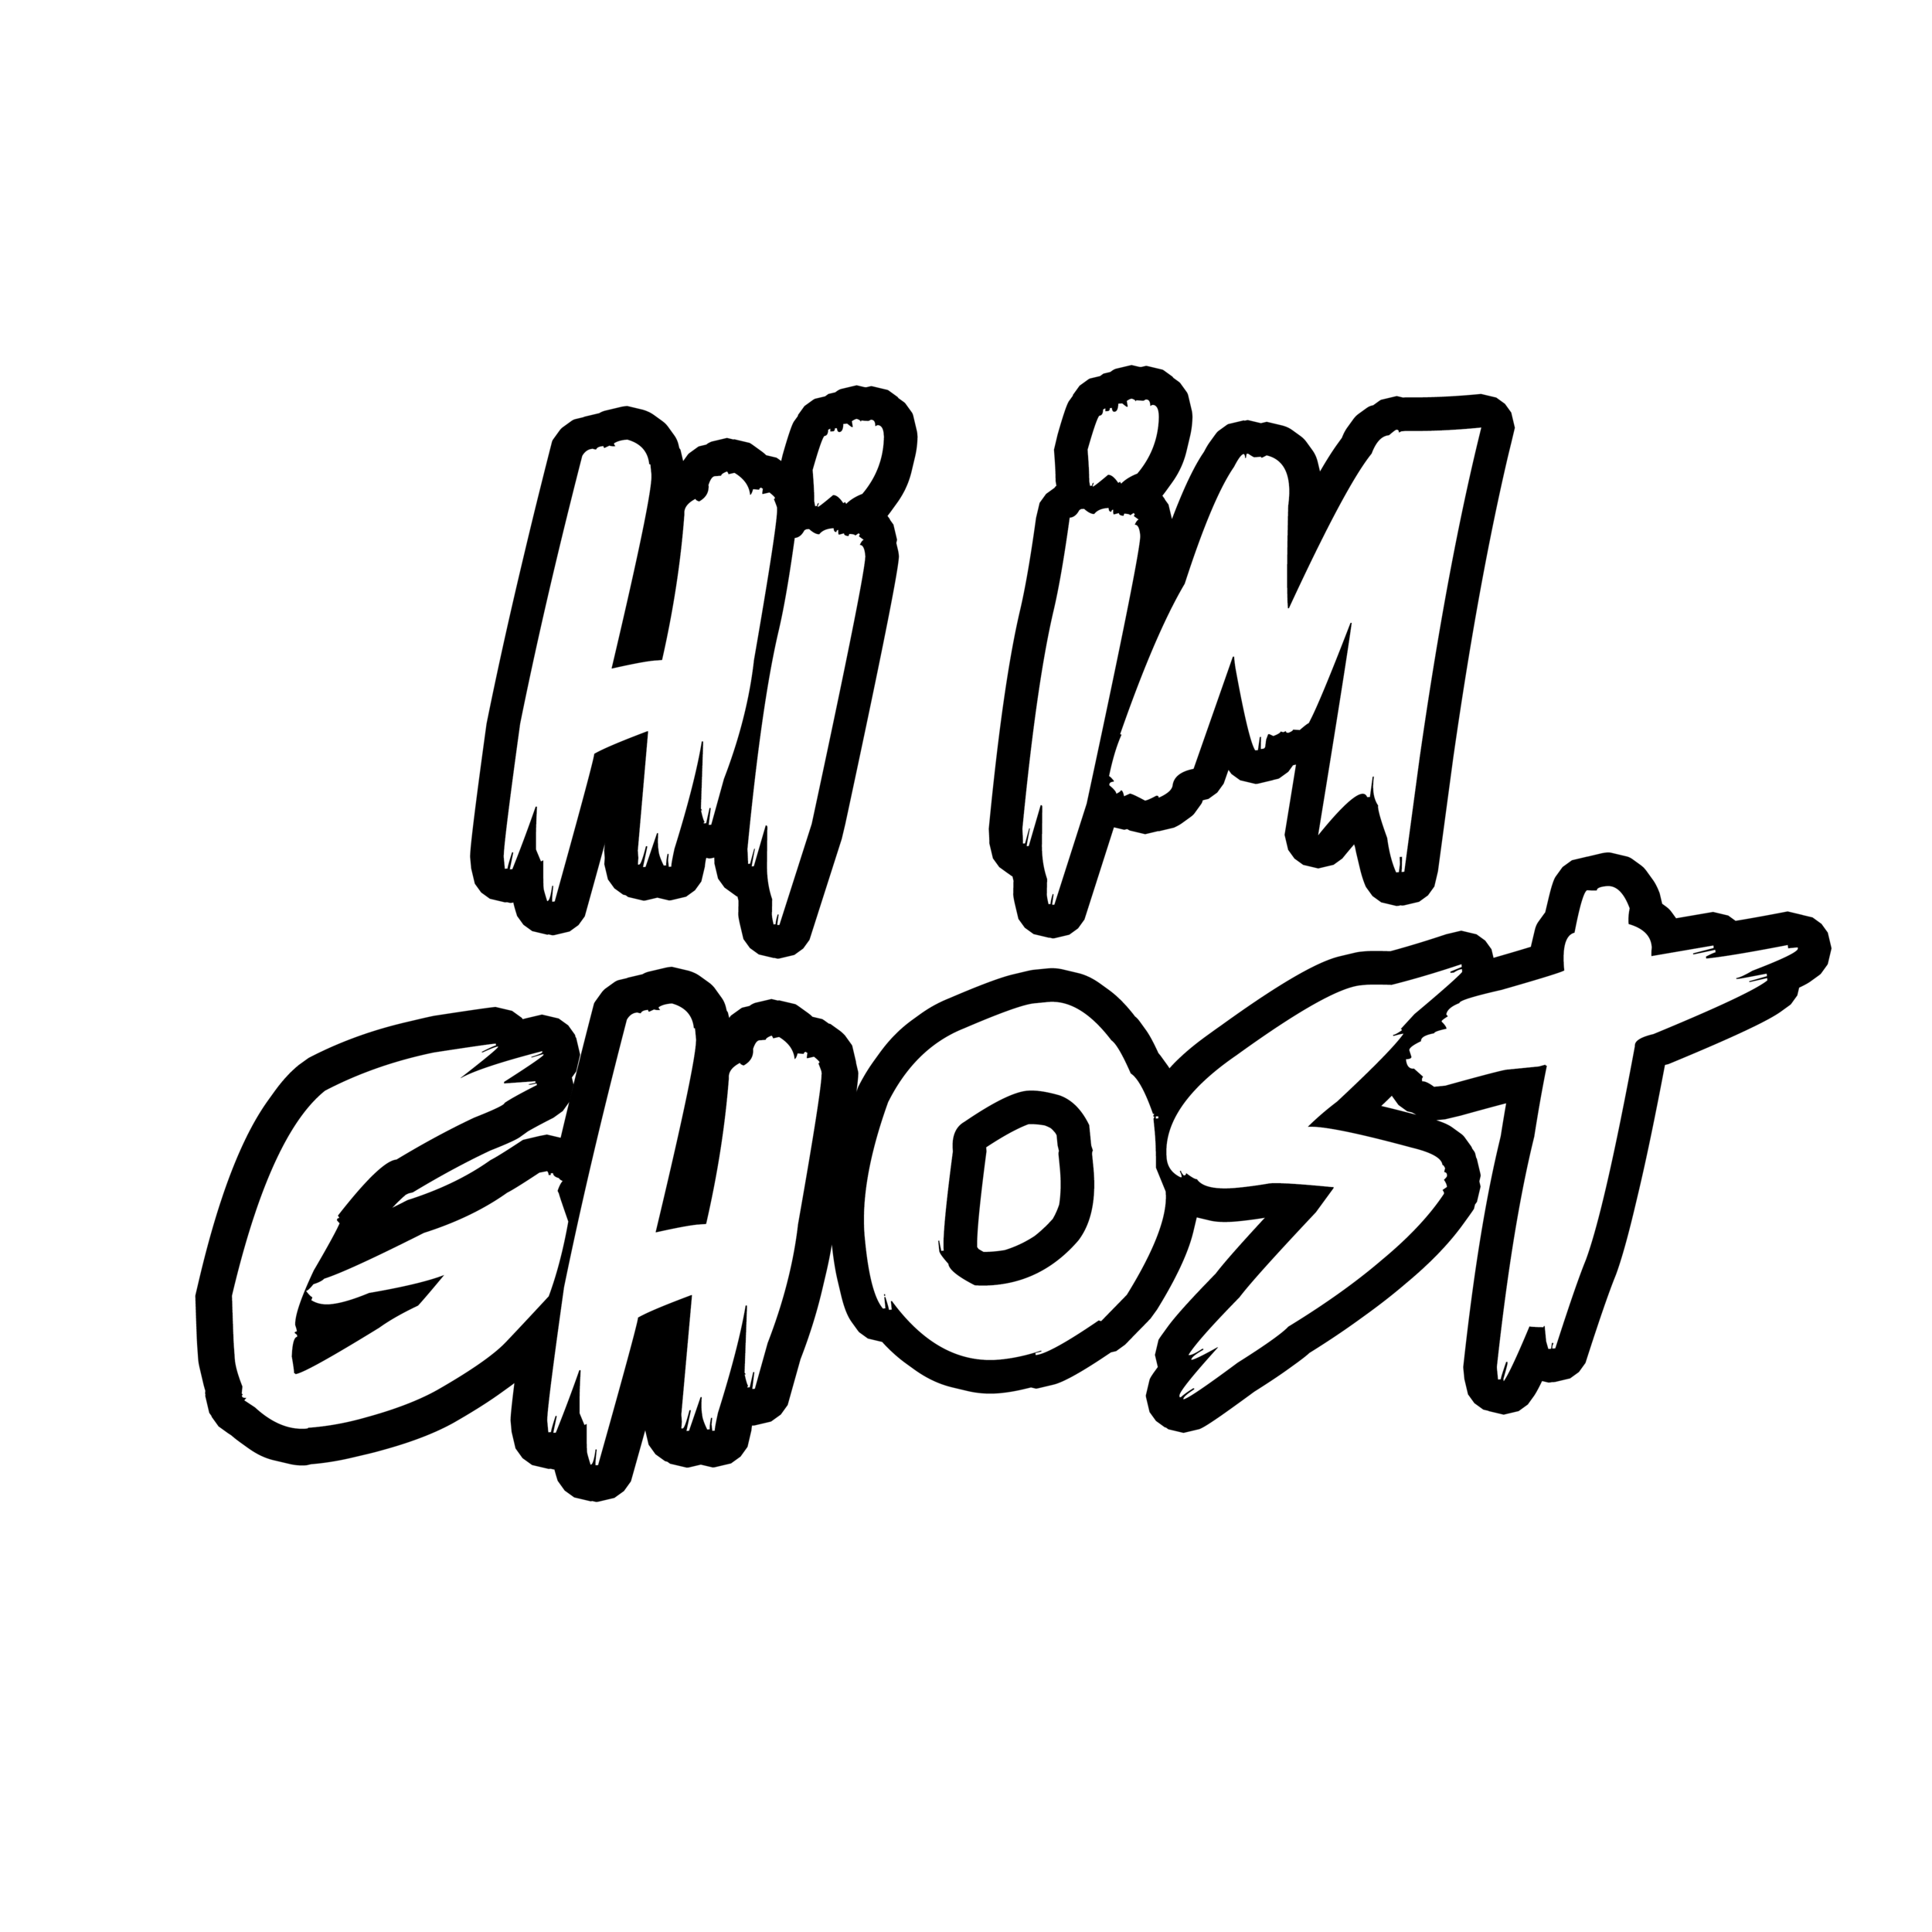 Static drawing ghost. Hi i m contact